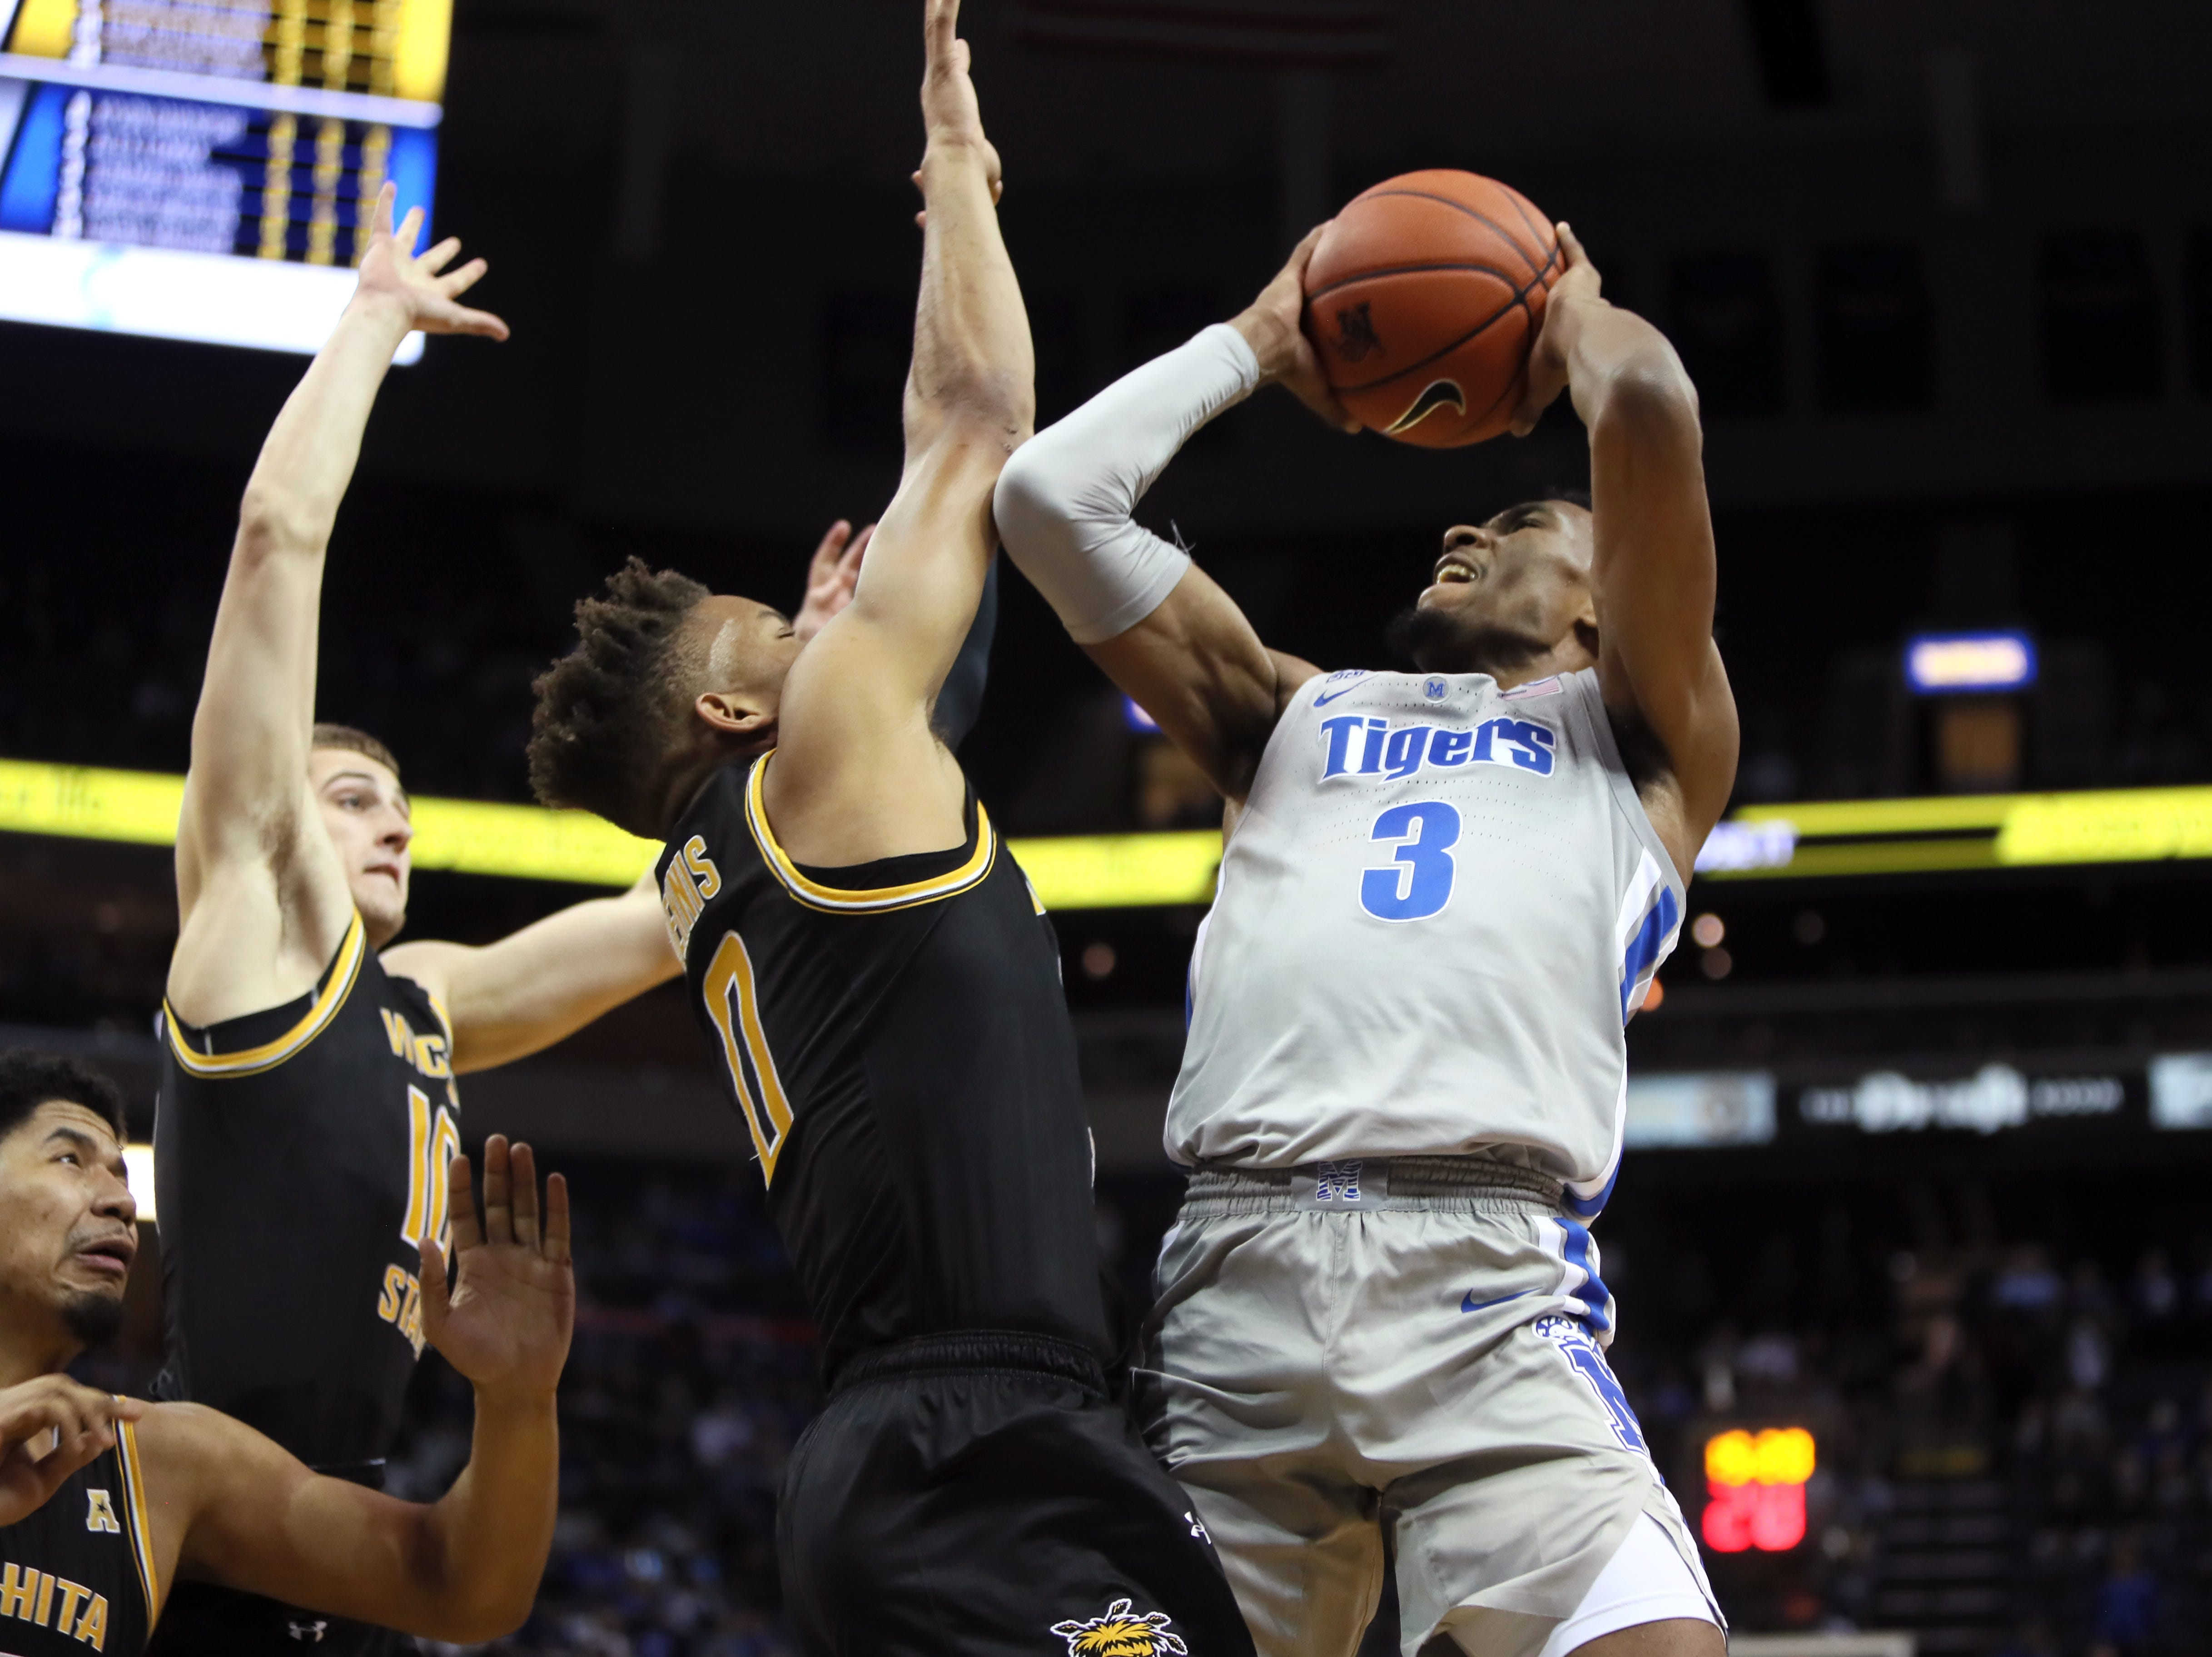 Memphis Tigers guard Jeremiah Martin shoots the ball over Wichita State Shockers guard Dexter Dennis during their game at the FedExForum on Thursday, Jan. 3, 2019.